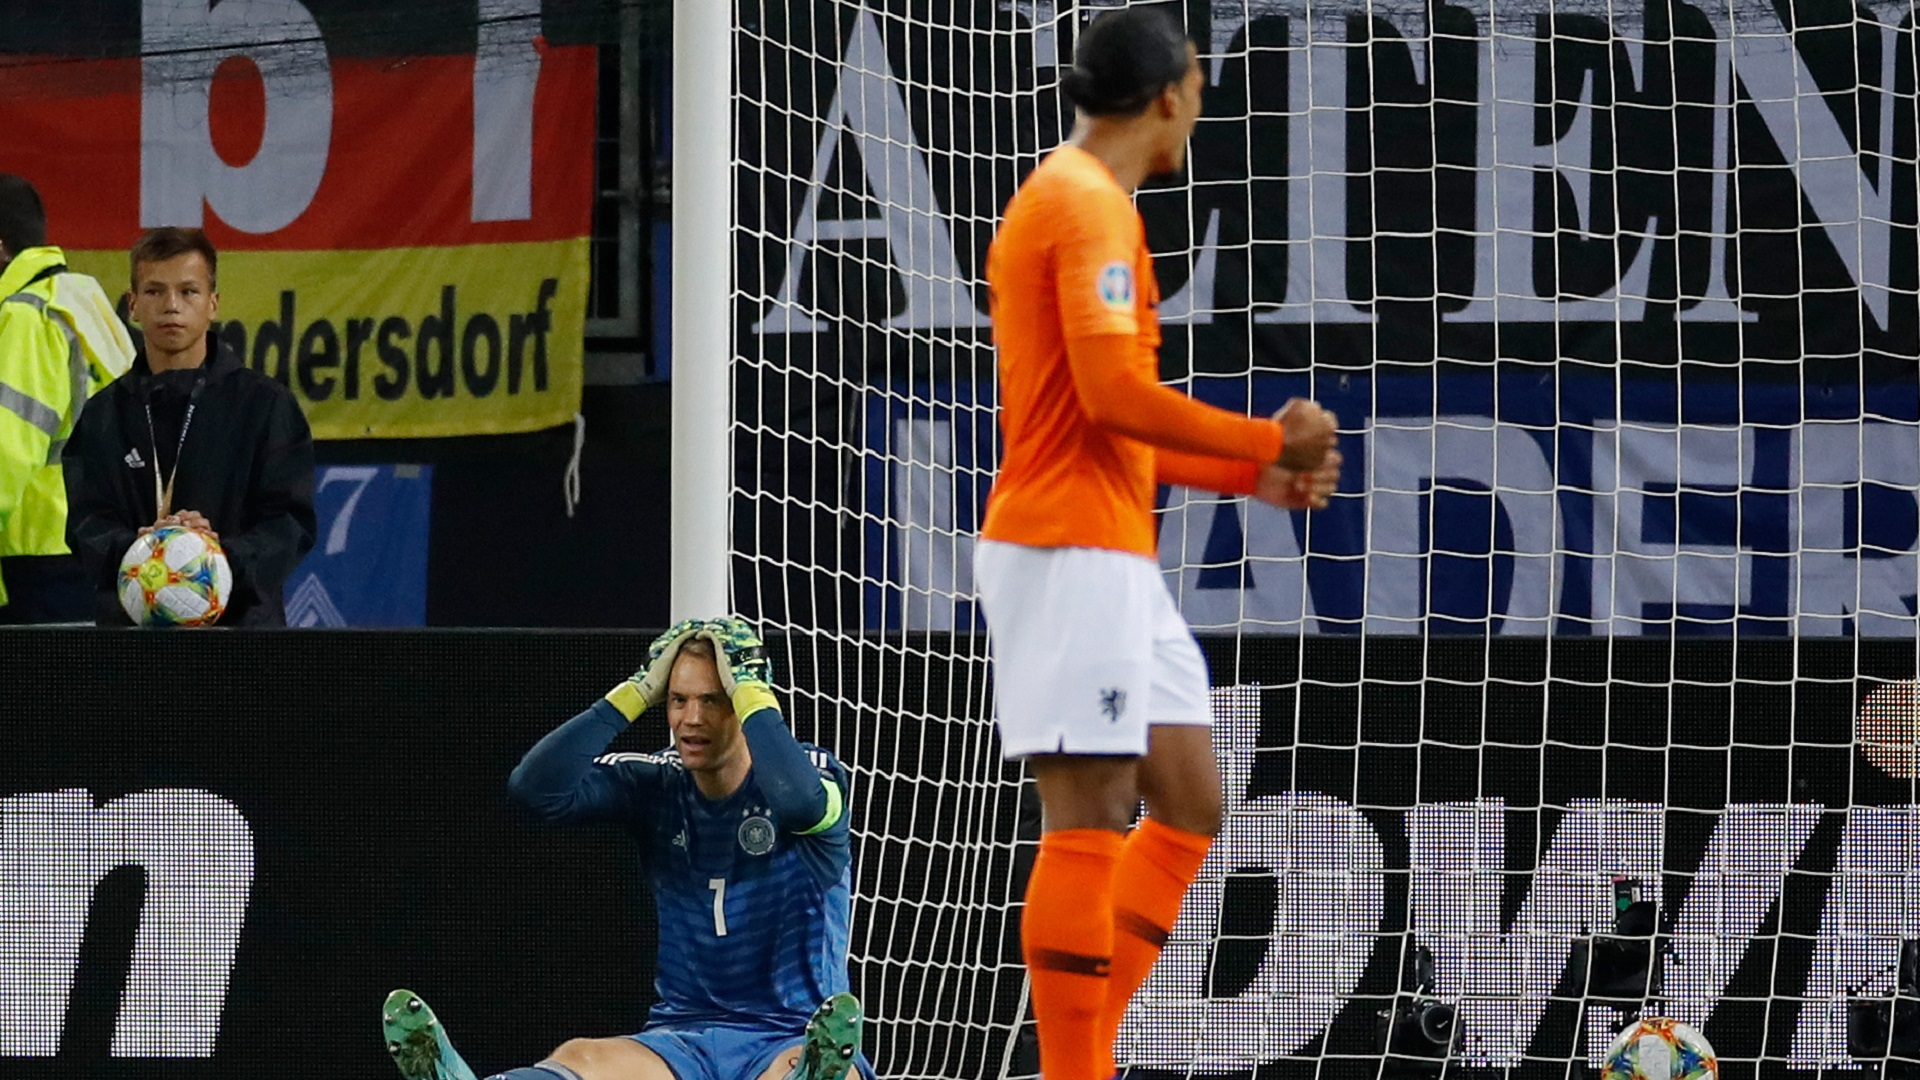 Euro 2020 qualifiers: Netherlands beat Germany 4-2